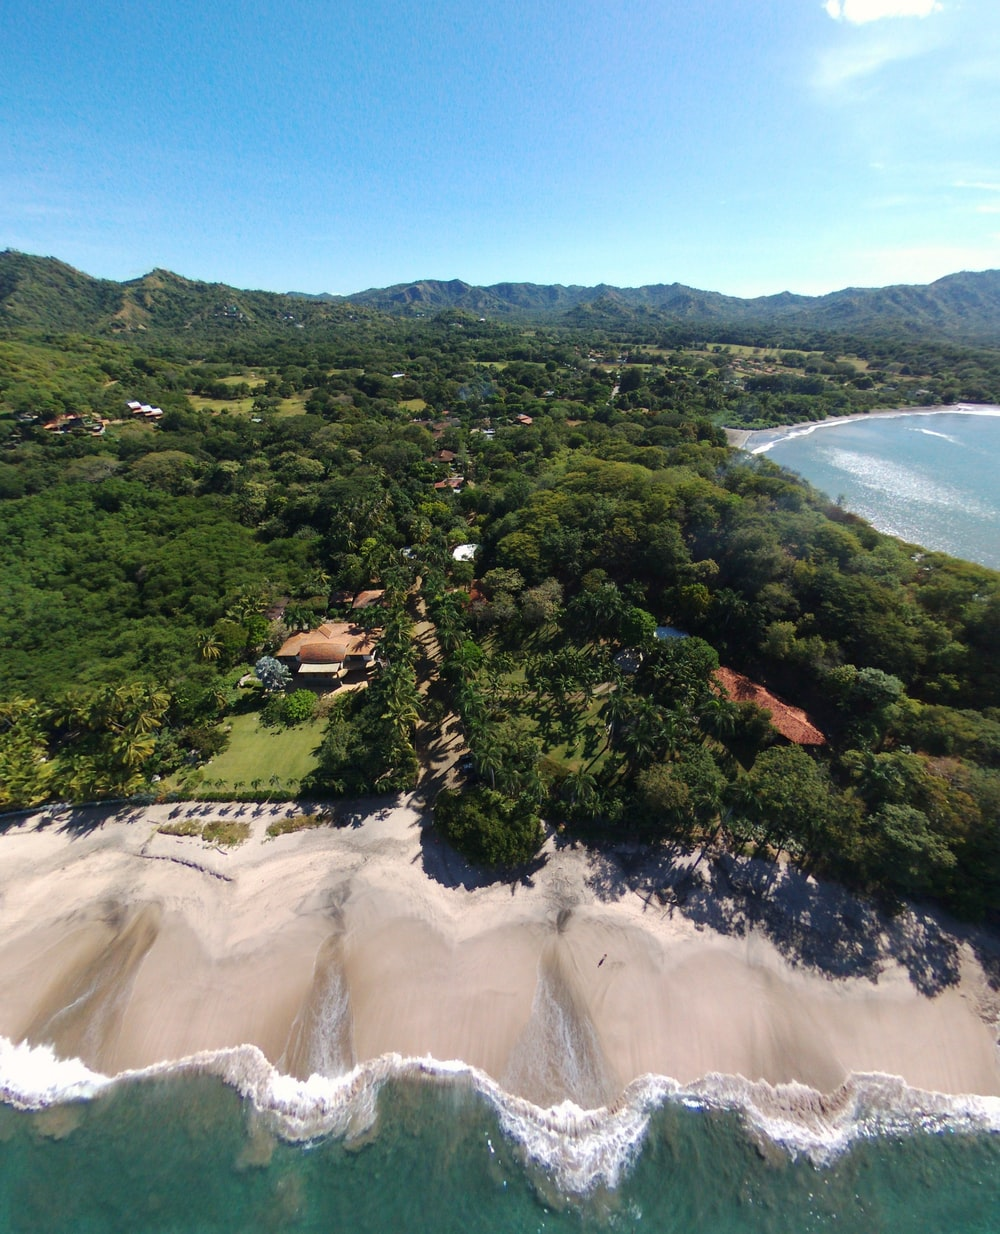 aerial view of green trees and brown sand beach during daytime